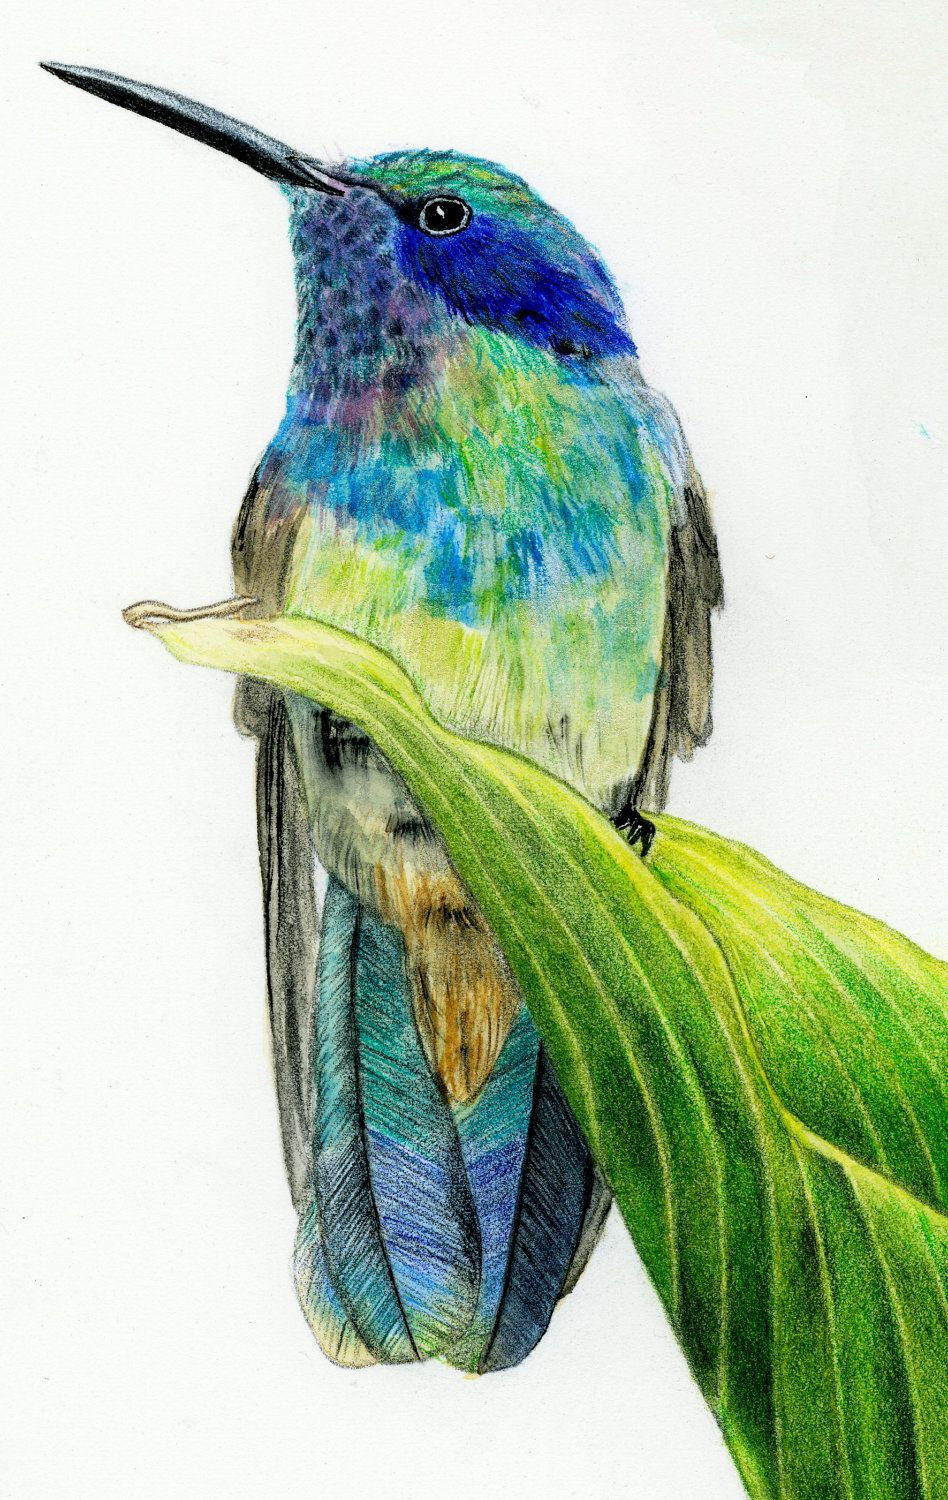 Fabulous Colors Looks To Be Colored Pencil Or Watercolor Pencils